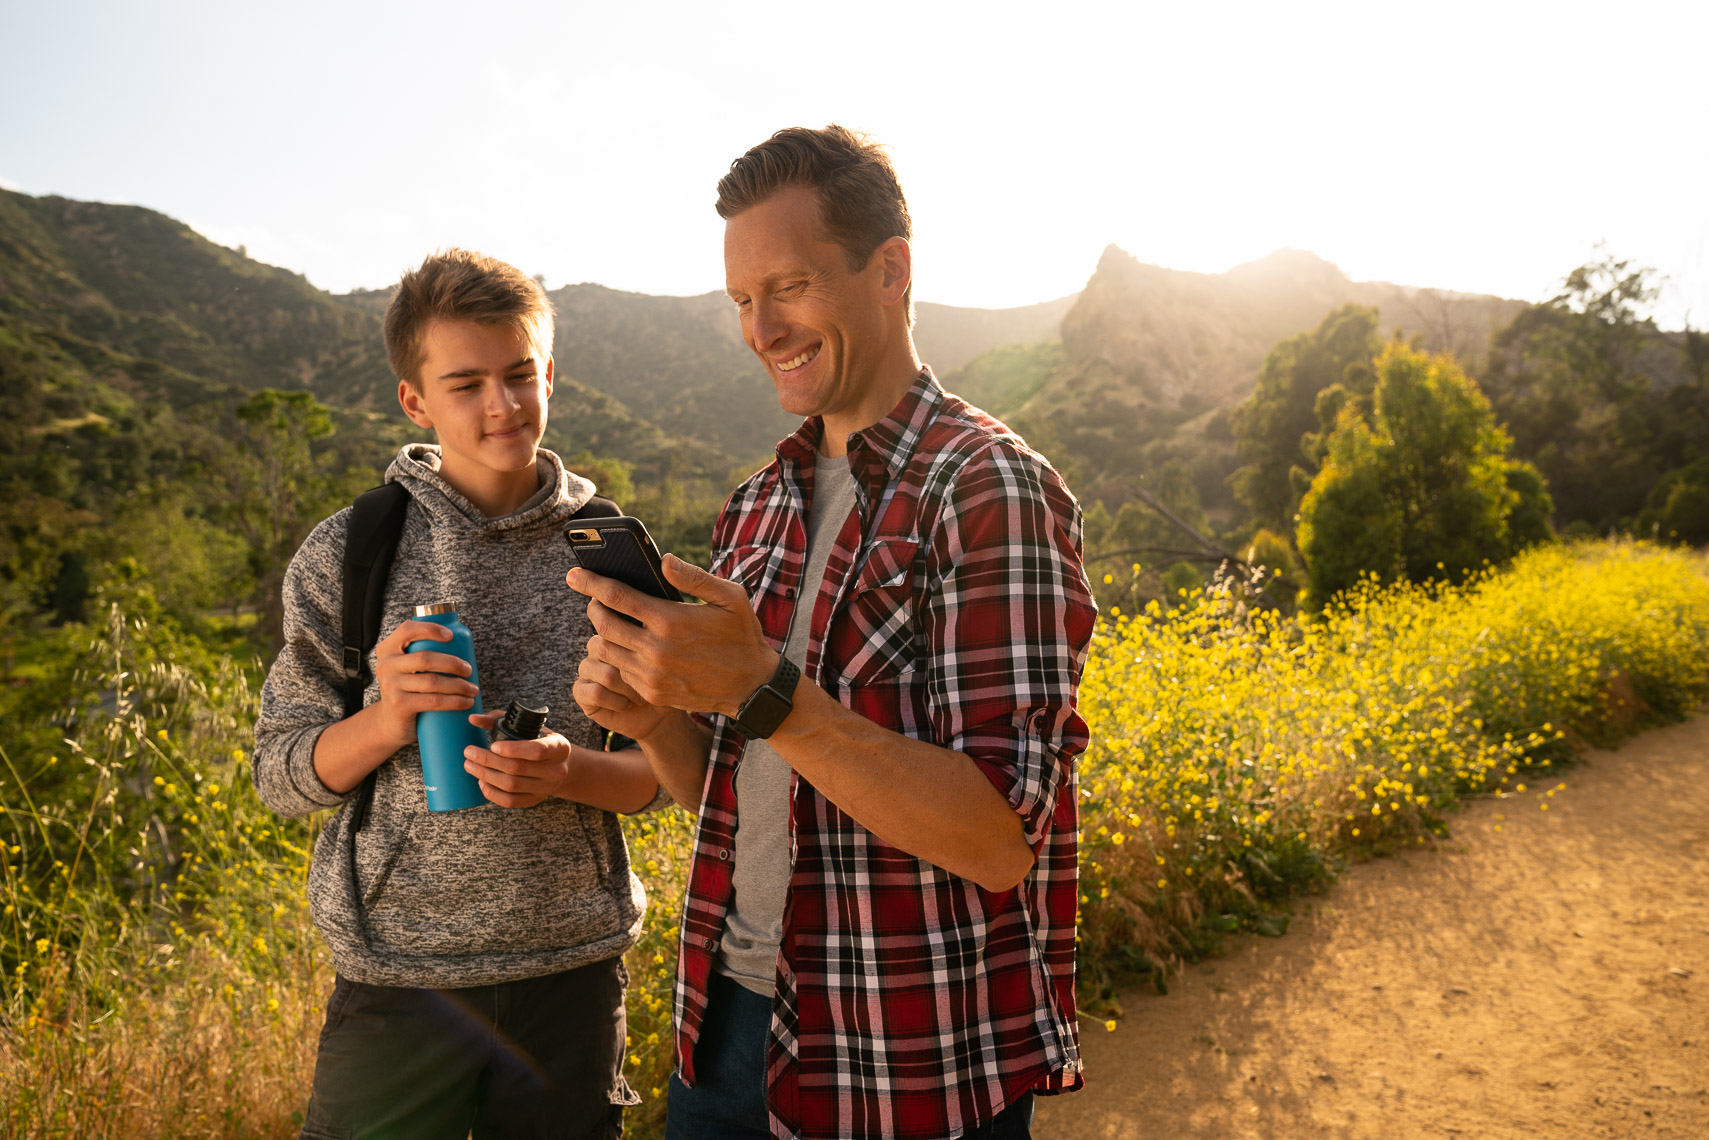 Avast - Father and Son Hiking Checking Map on Smartphone